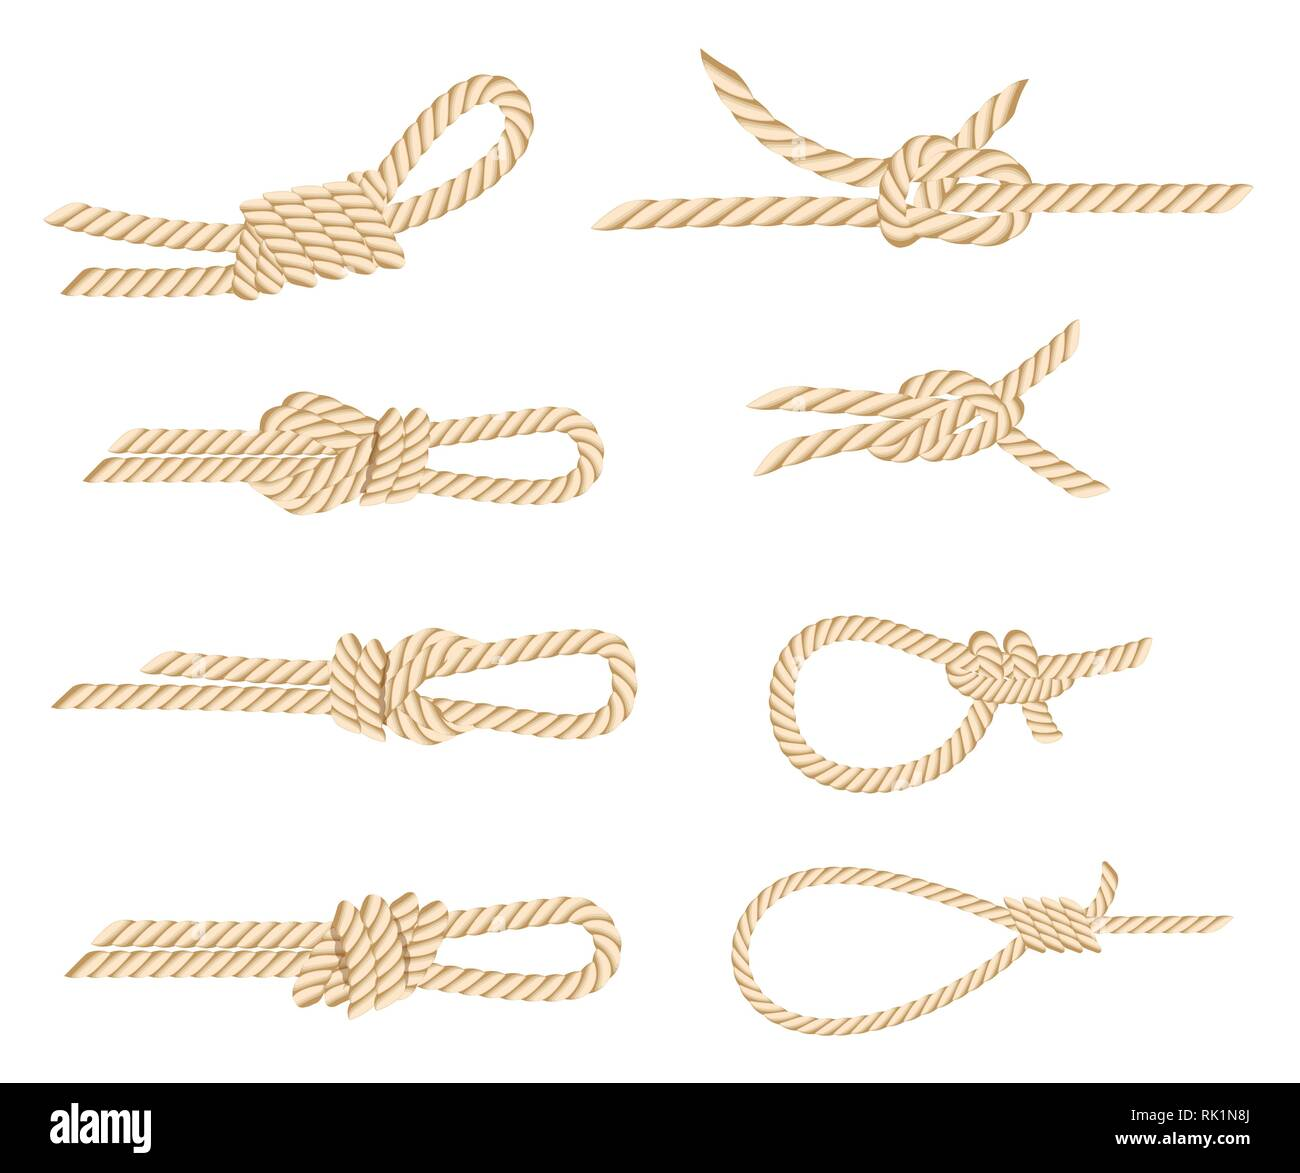 Set of nautical rope knots. Yellow rope. Strong marine rope knots. Flat vector illustration isolated on white background. - Stock Vector